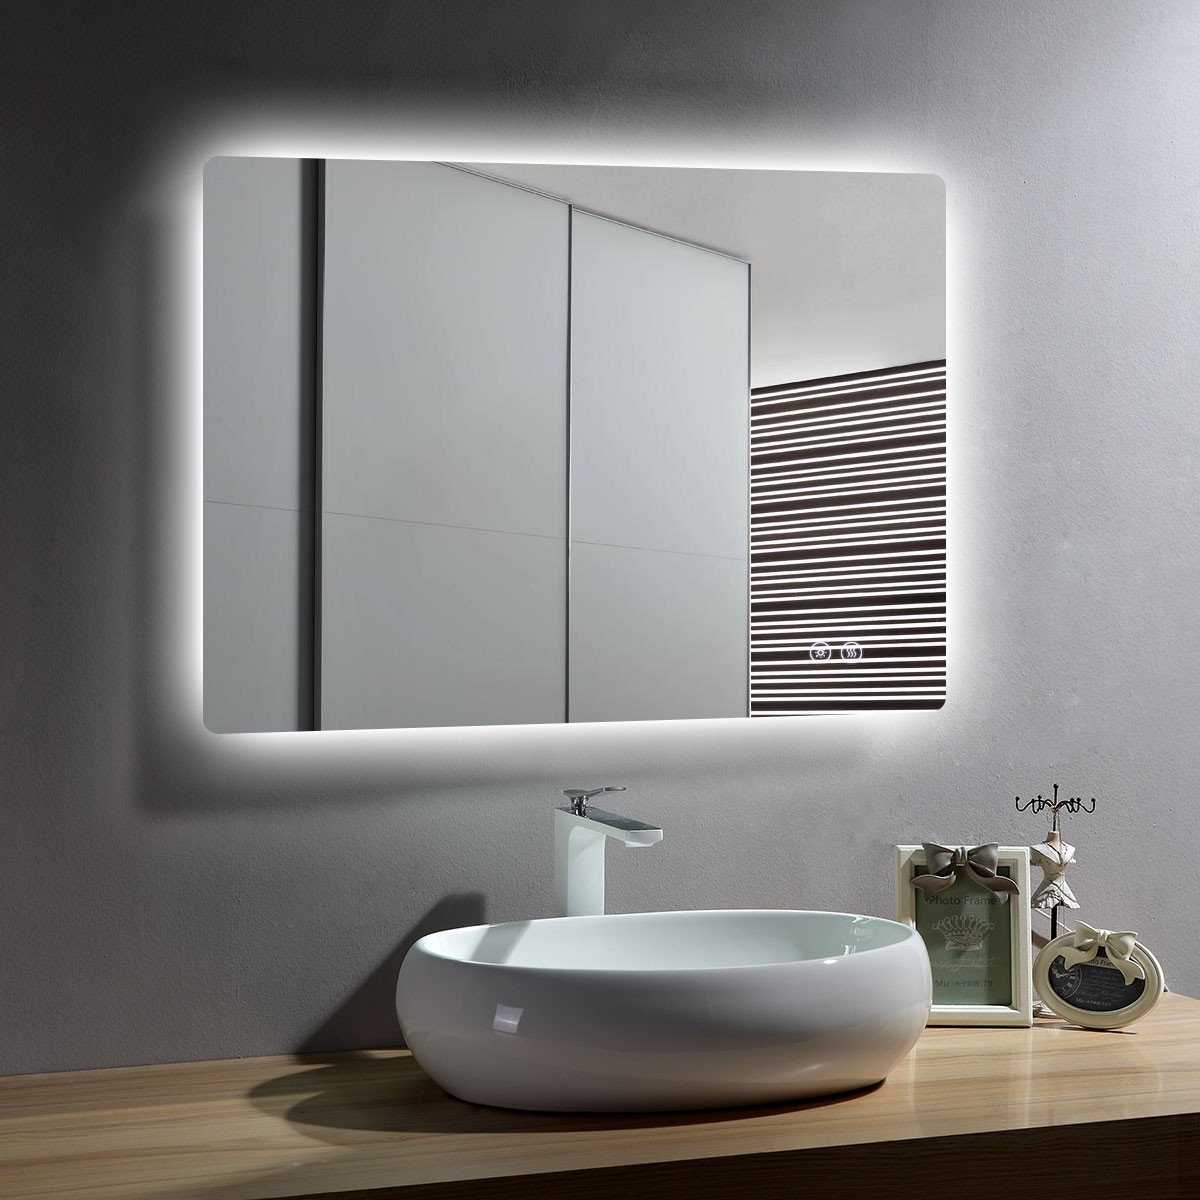 DECORAPORT 36 x 28 Inch LED Bathroom Mirror with Touch Button, Anti Fog, Dimmable, Vertical & Horizontal Mount (D513-3628)